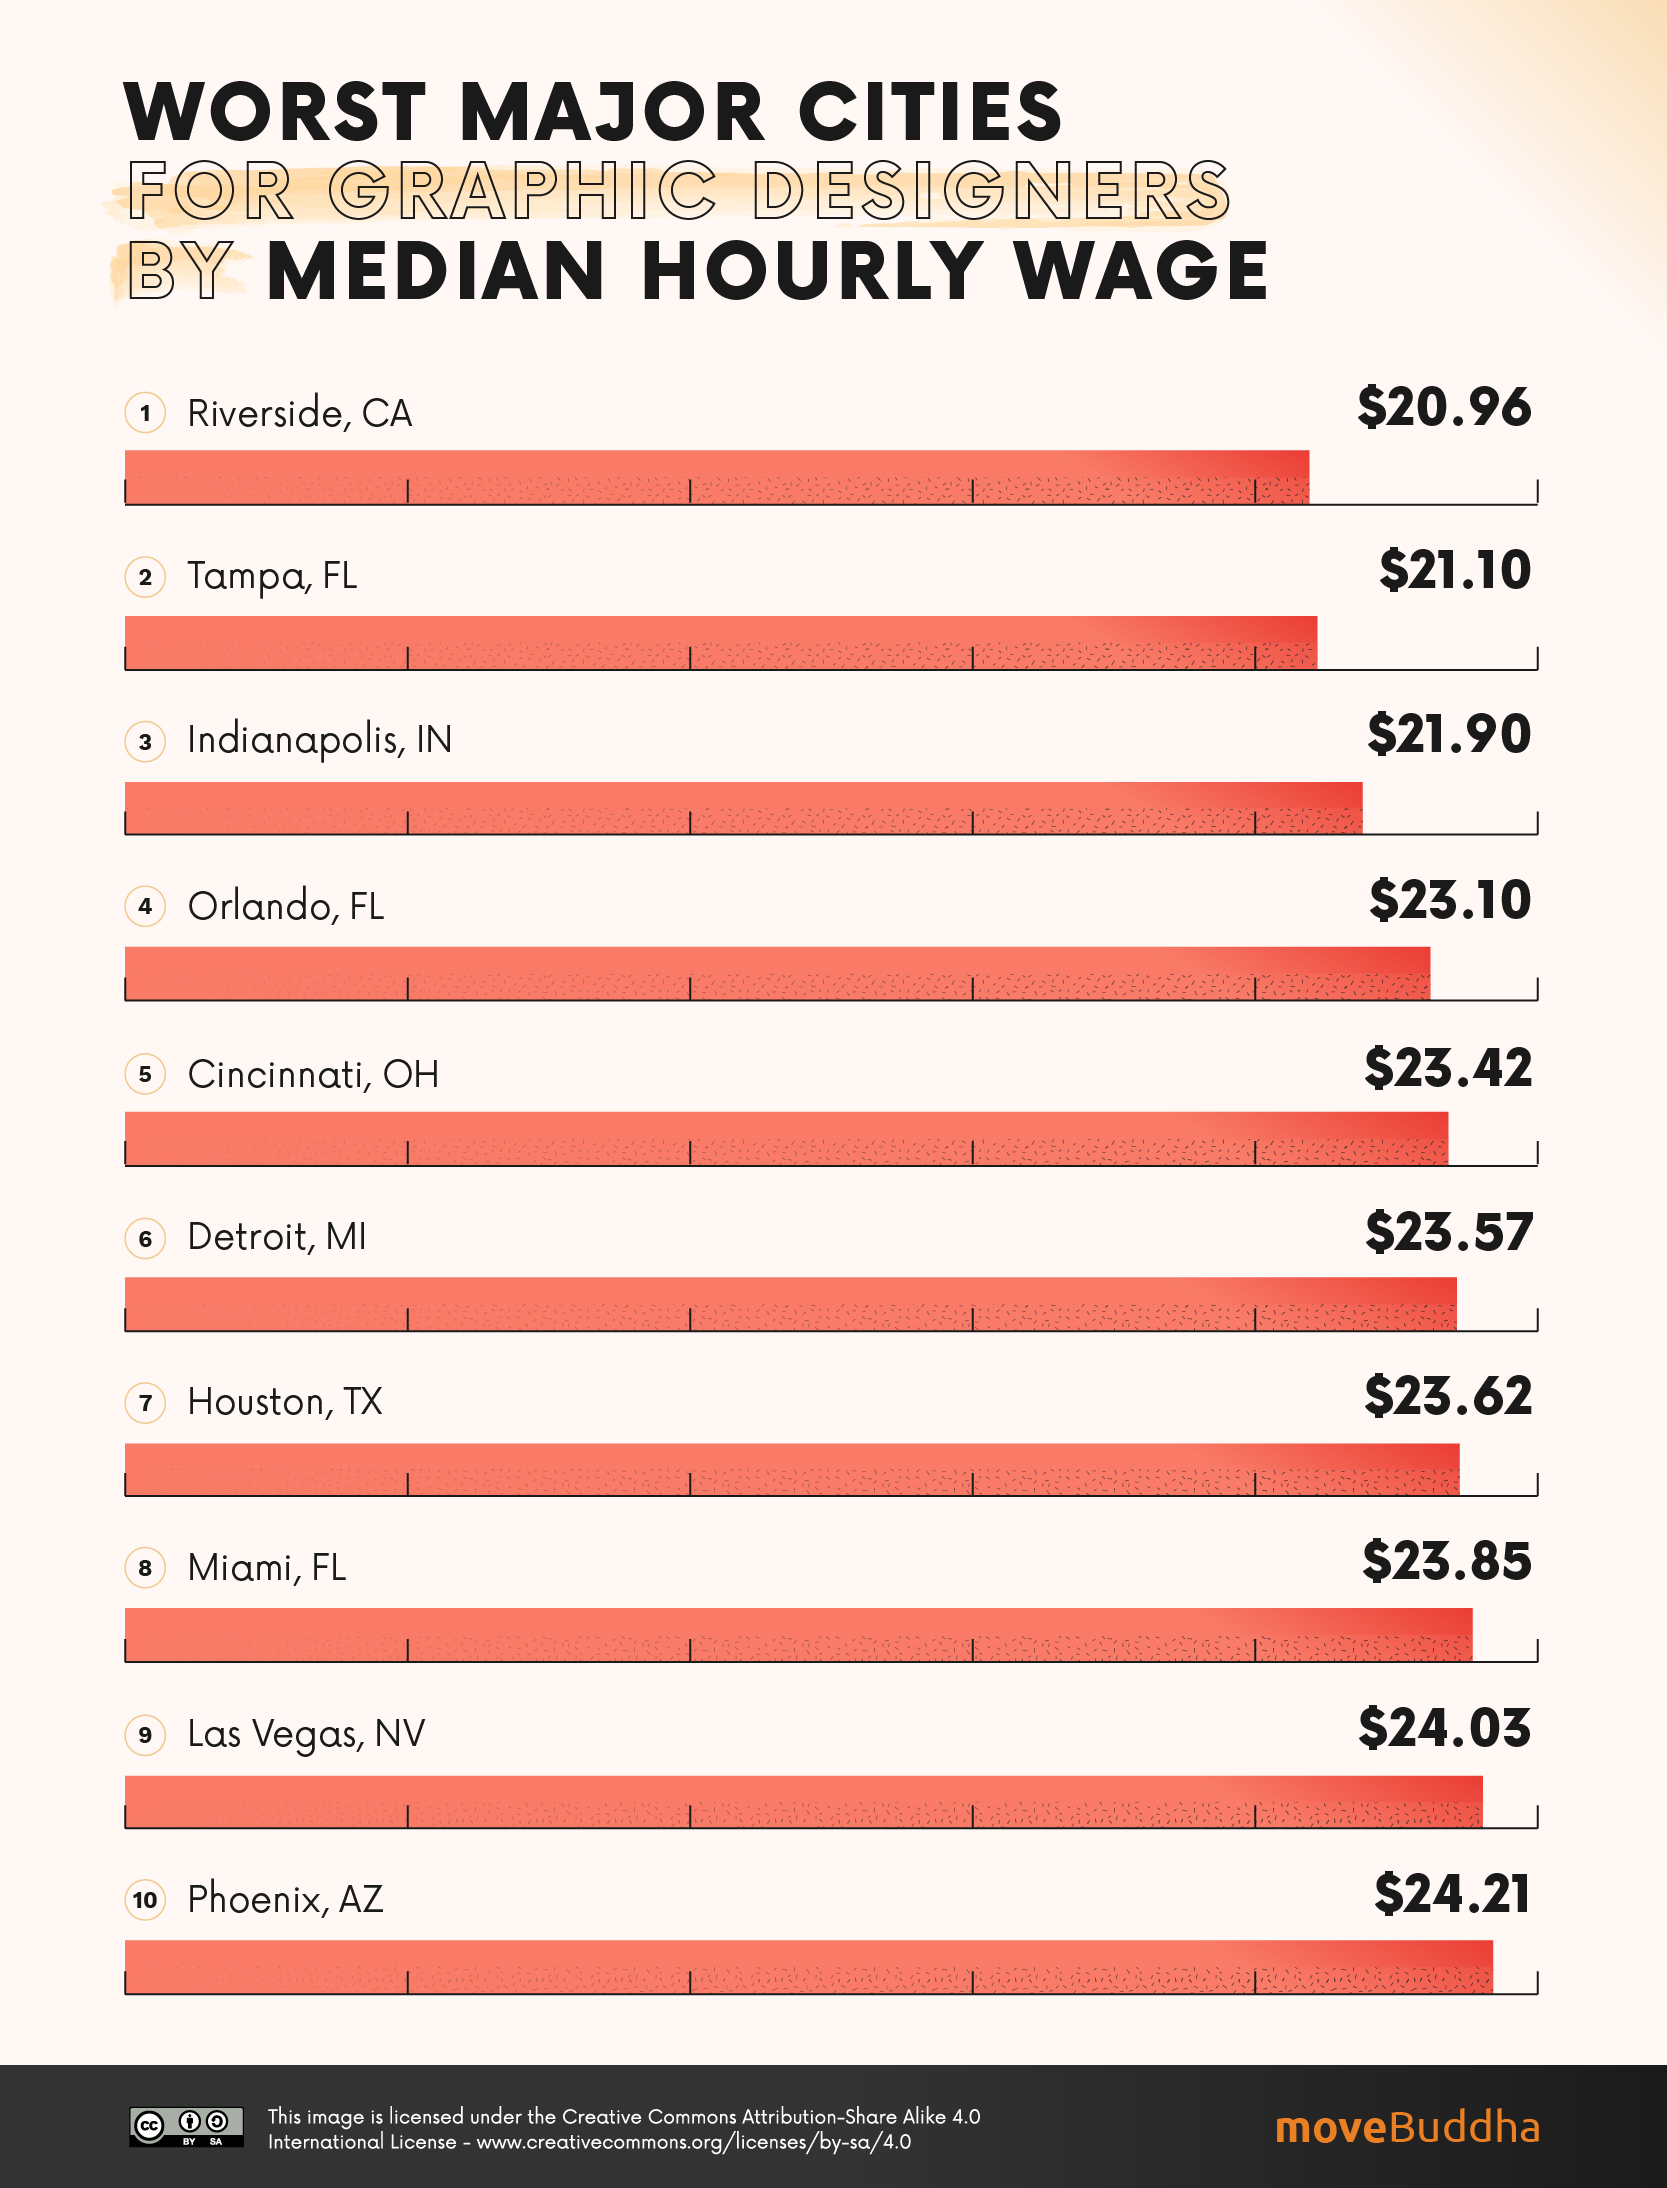 Worst Major Cities (2 million + residents) for Graphic Designers by Median Hourly Wage